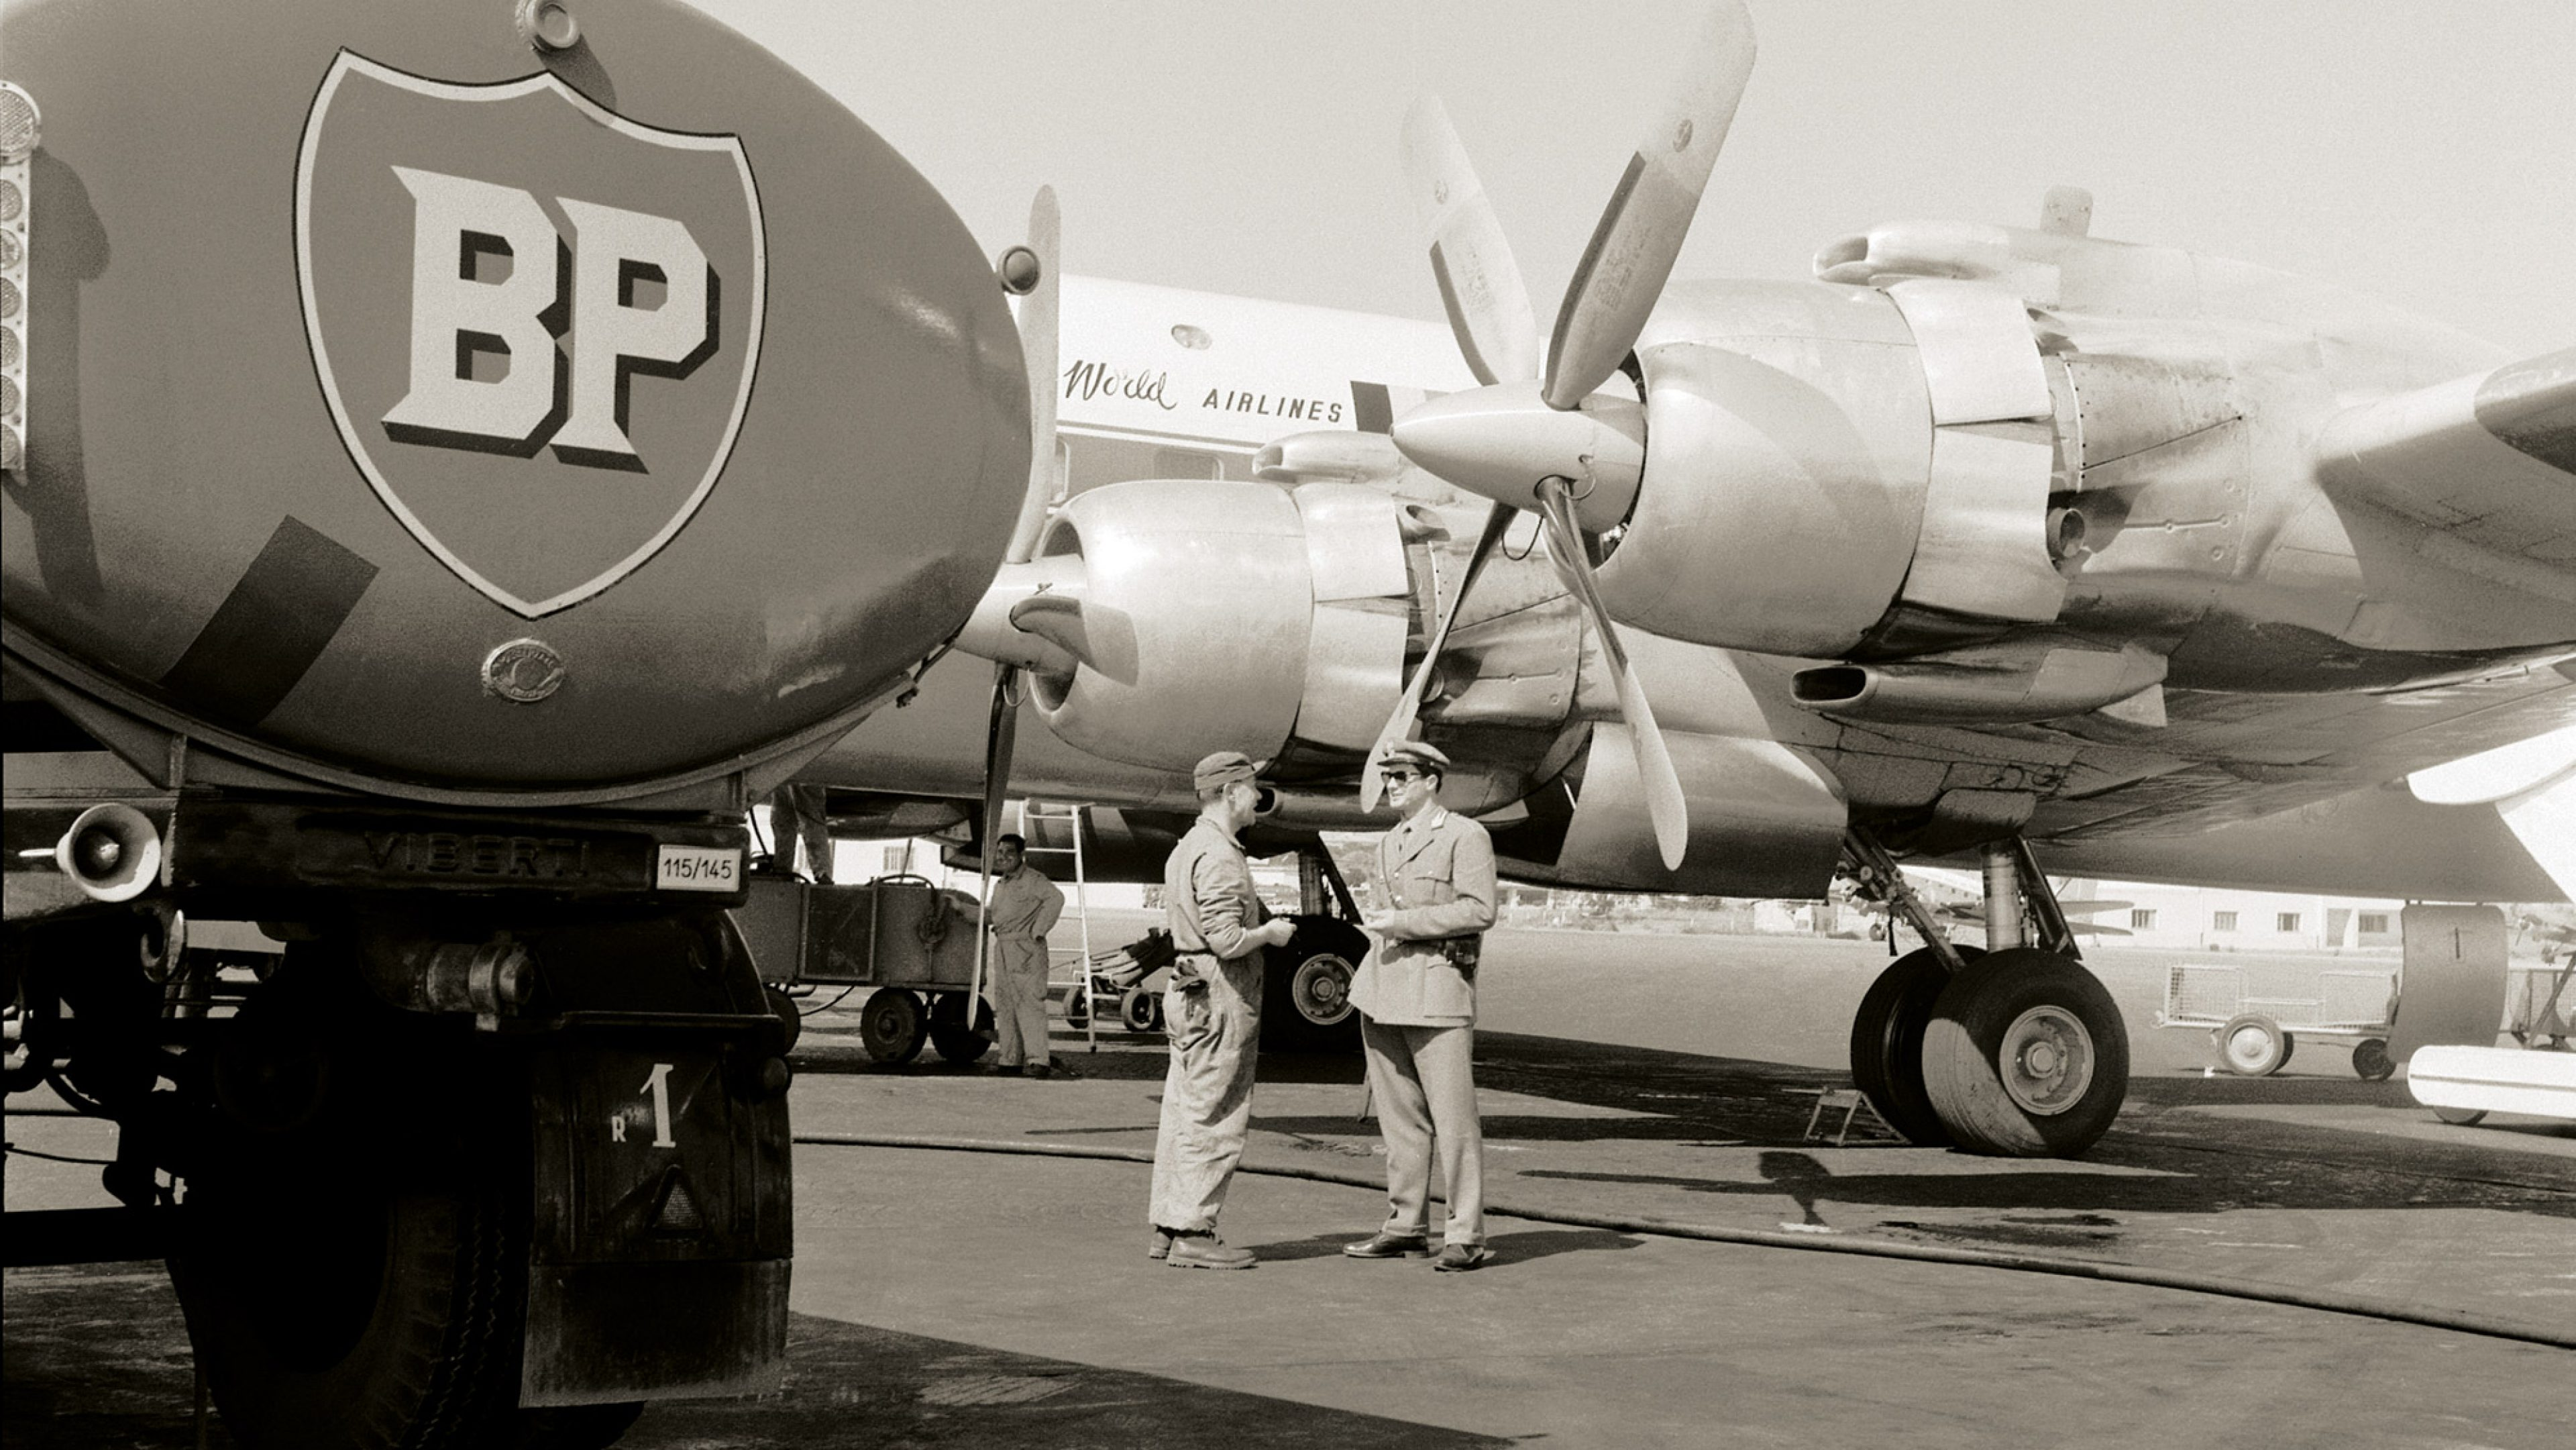 1950s BP Aviation Service